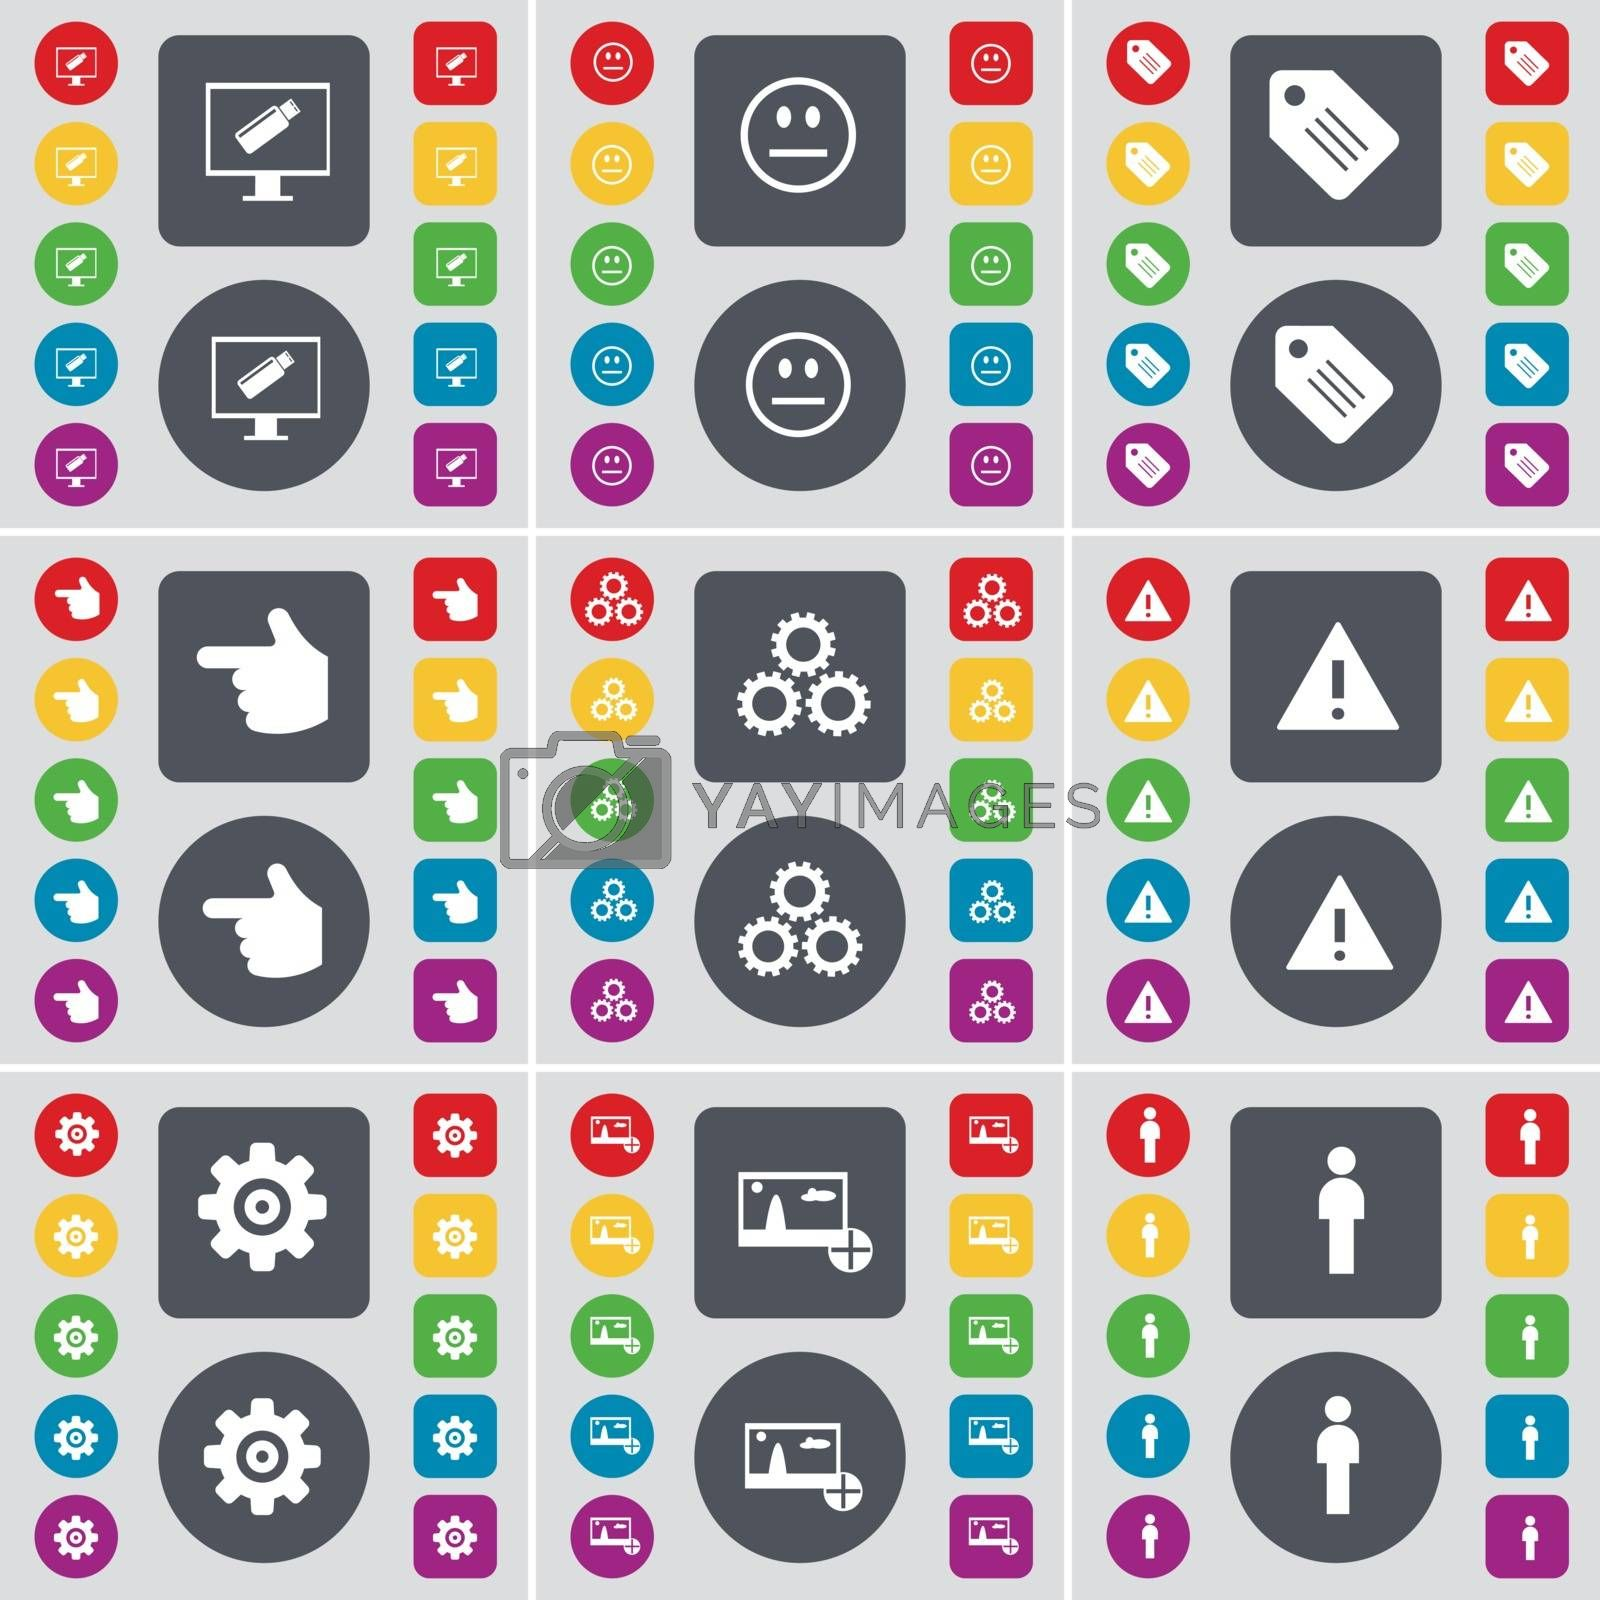 Royalty free image of Monitor, Smile, Tag, Hand, Gear, Warning, Gear, Picture, Silhouette icon symbol. A large set of flat, colored buttons for your design. Vector by serhii_lohvyniuk